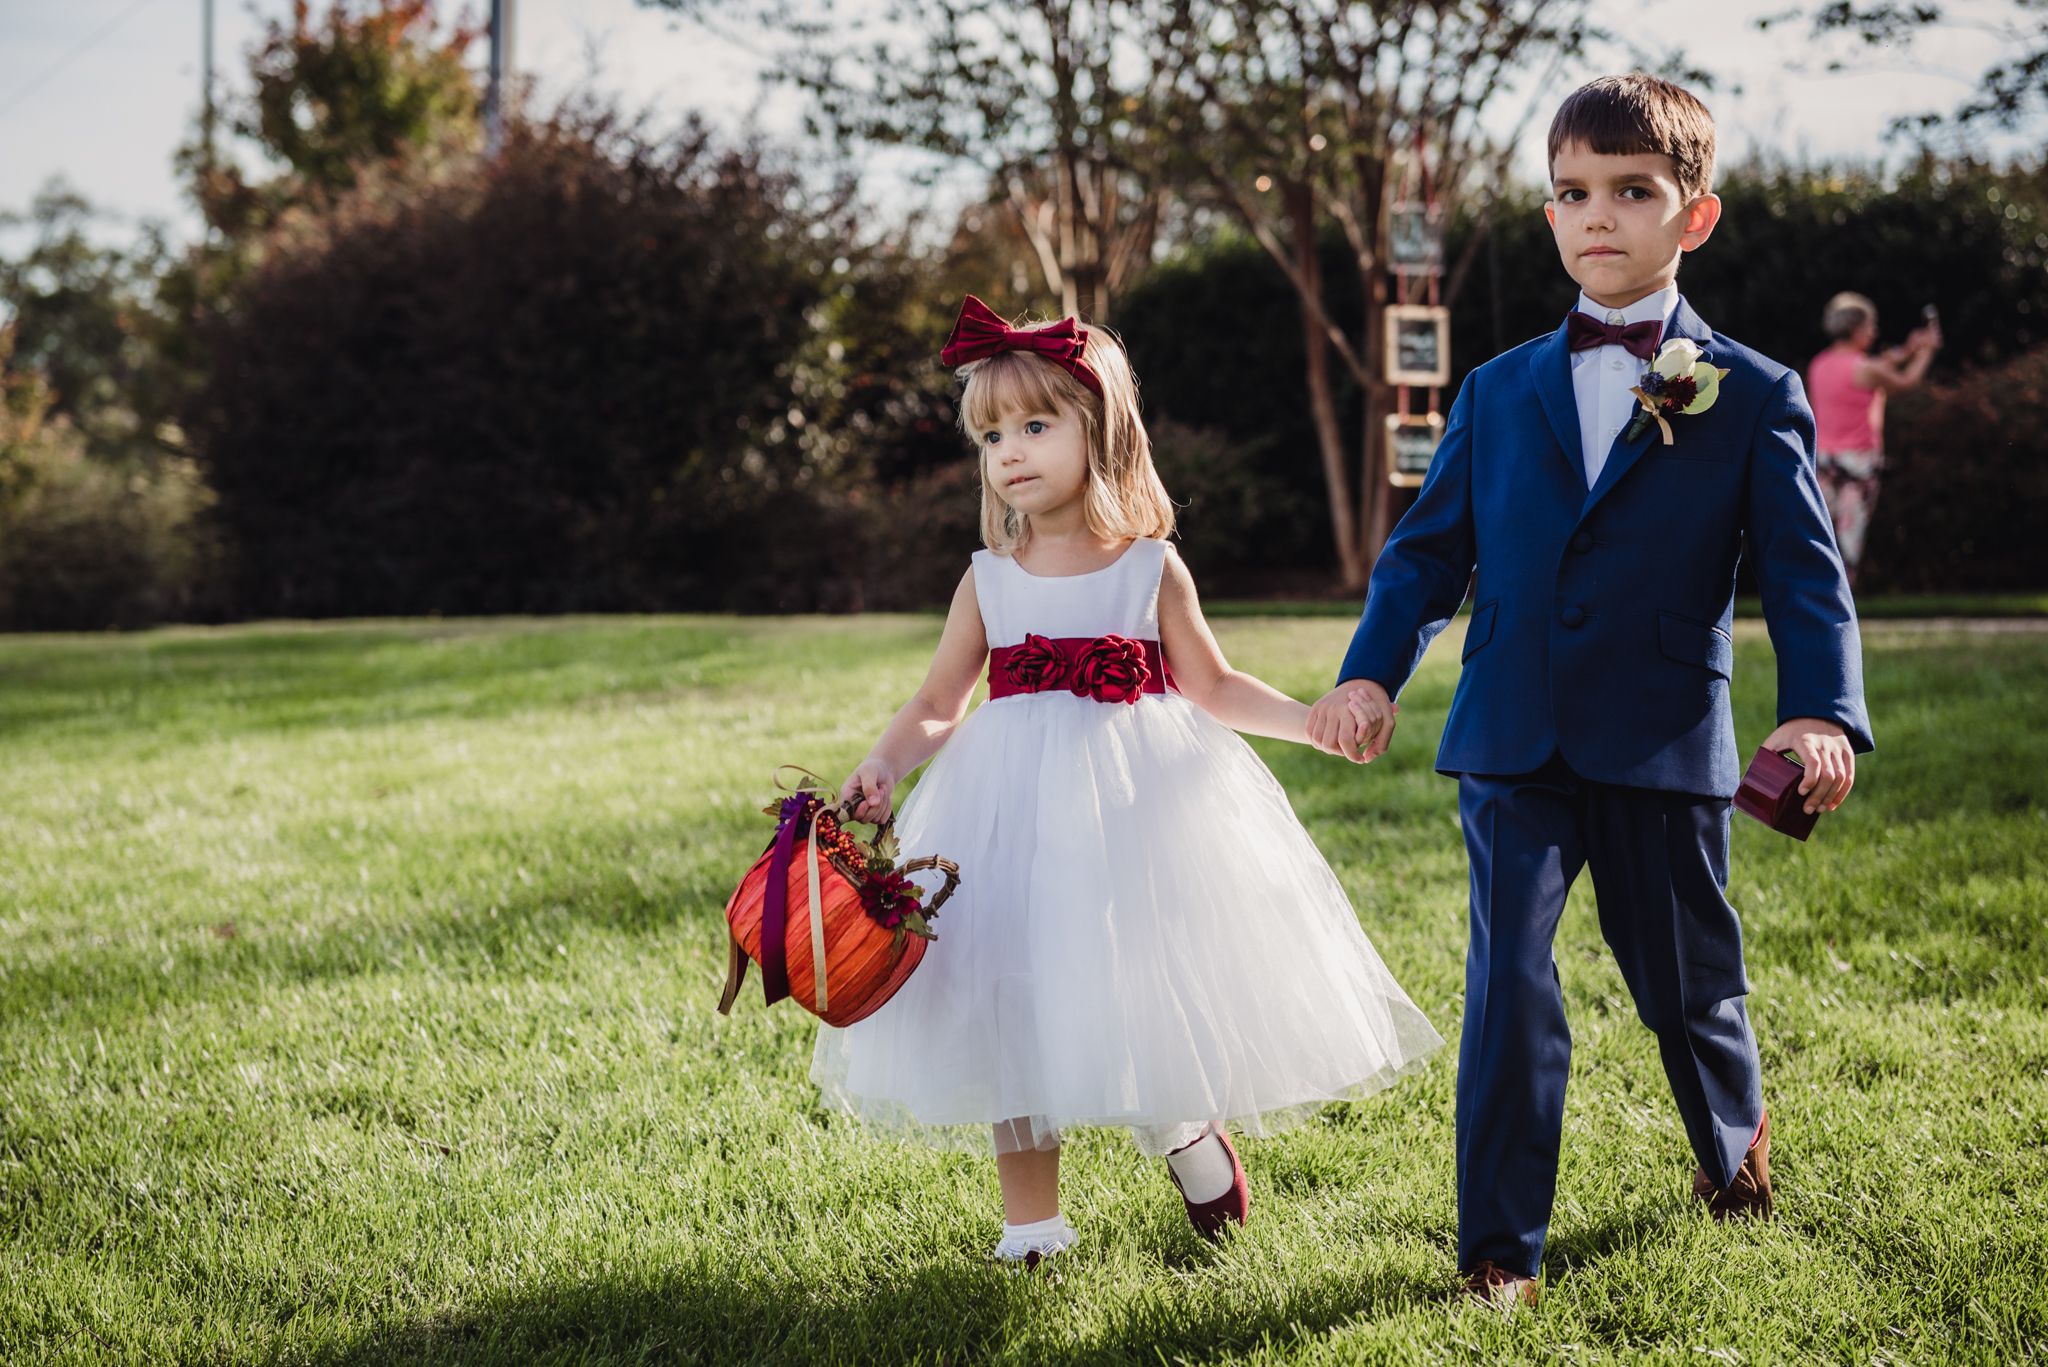 ring-bearer-and-flower-girl-holding-hands-down-the-aisle.jpg